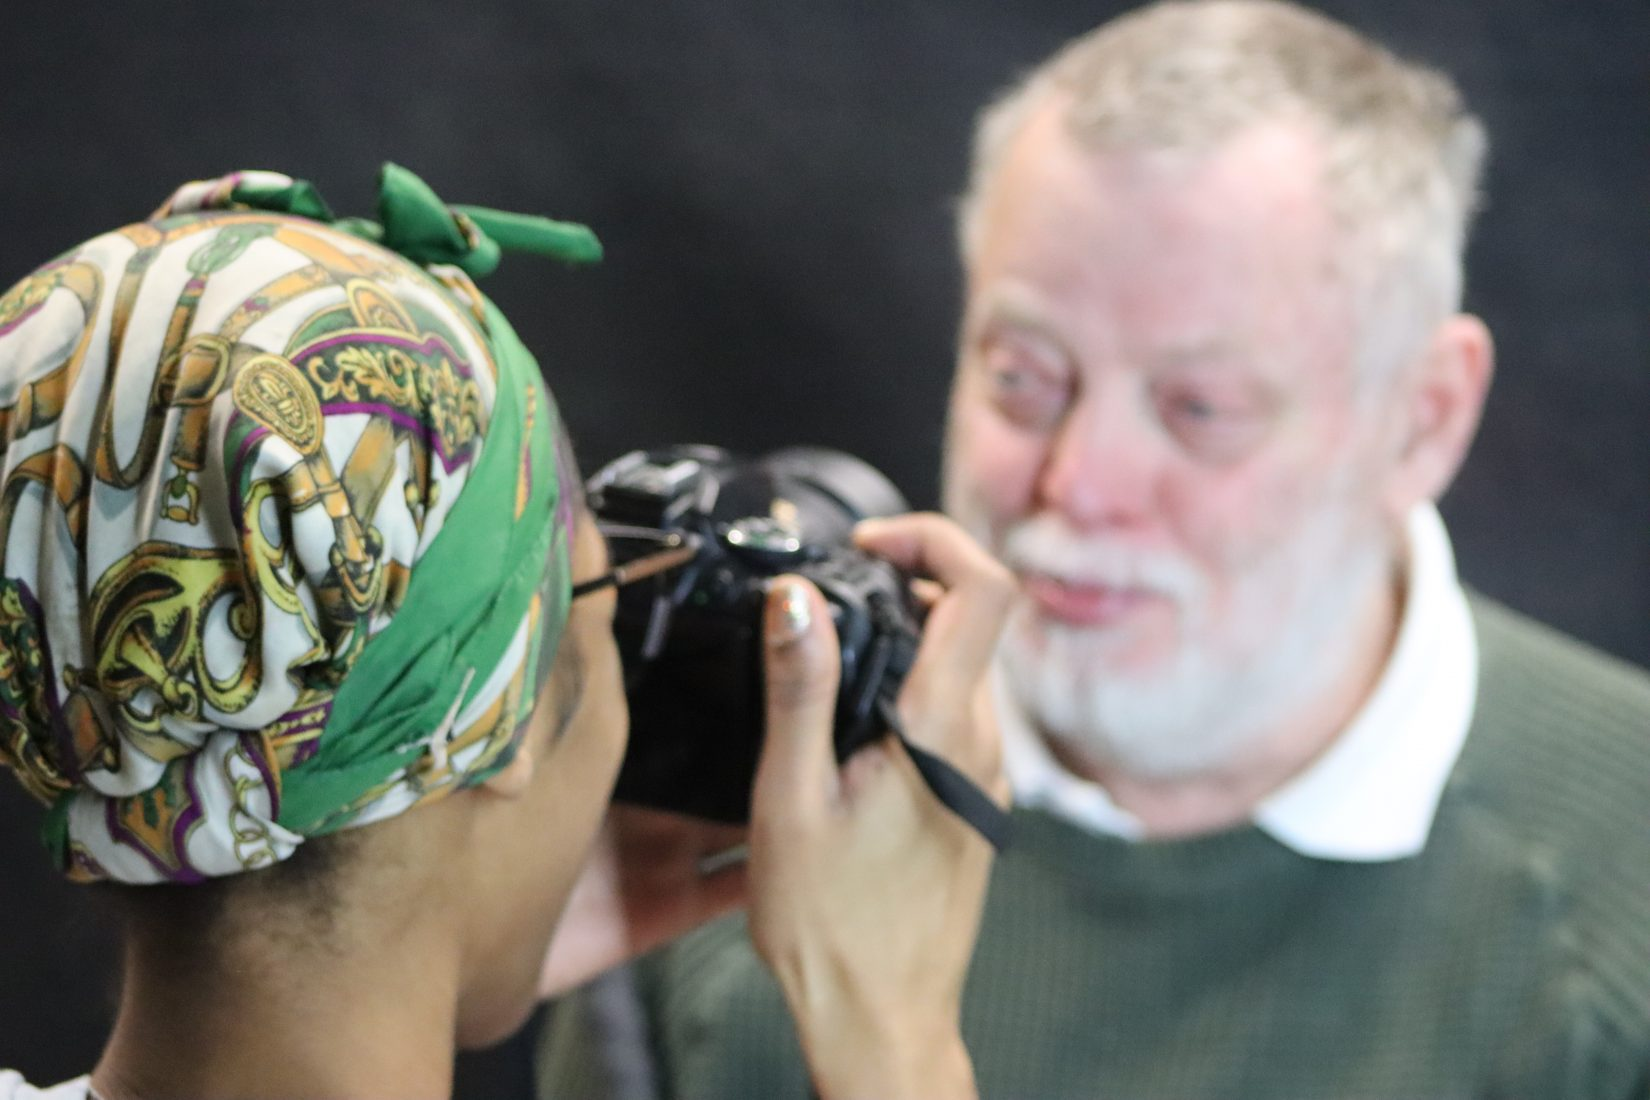 Woman in foreground with a colourful headscarf photographs a man with a grey hair and beard in front of a dark studio backdrop.